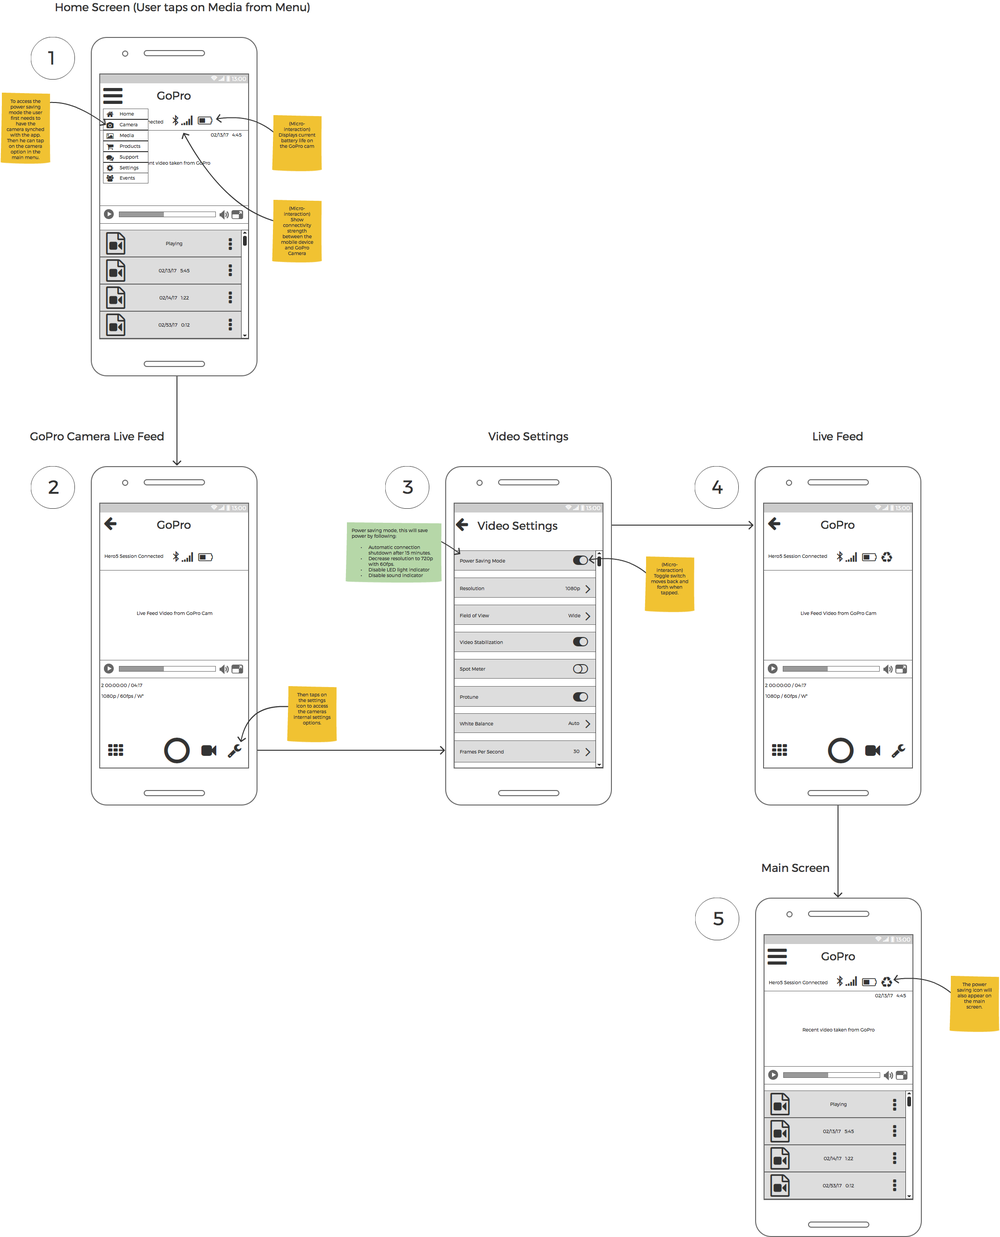 User flow for enabling power-saving mode.